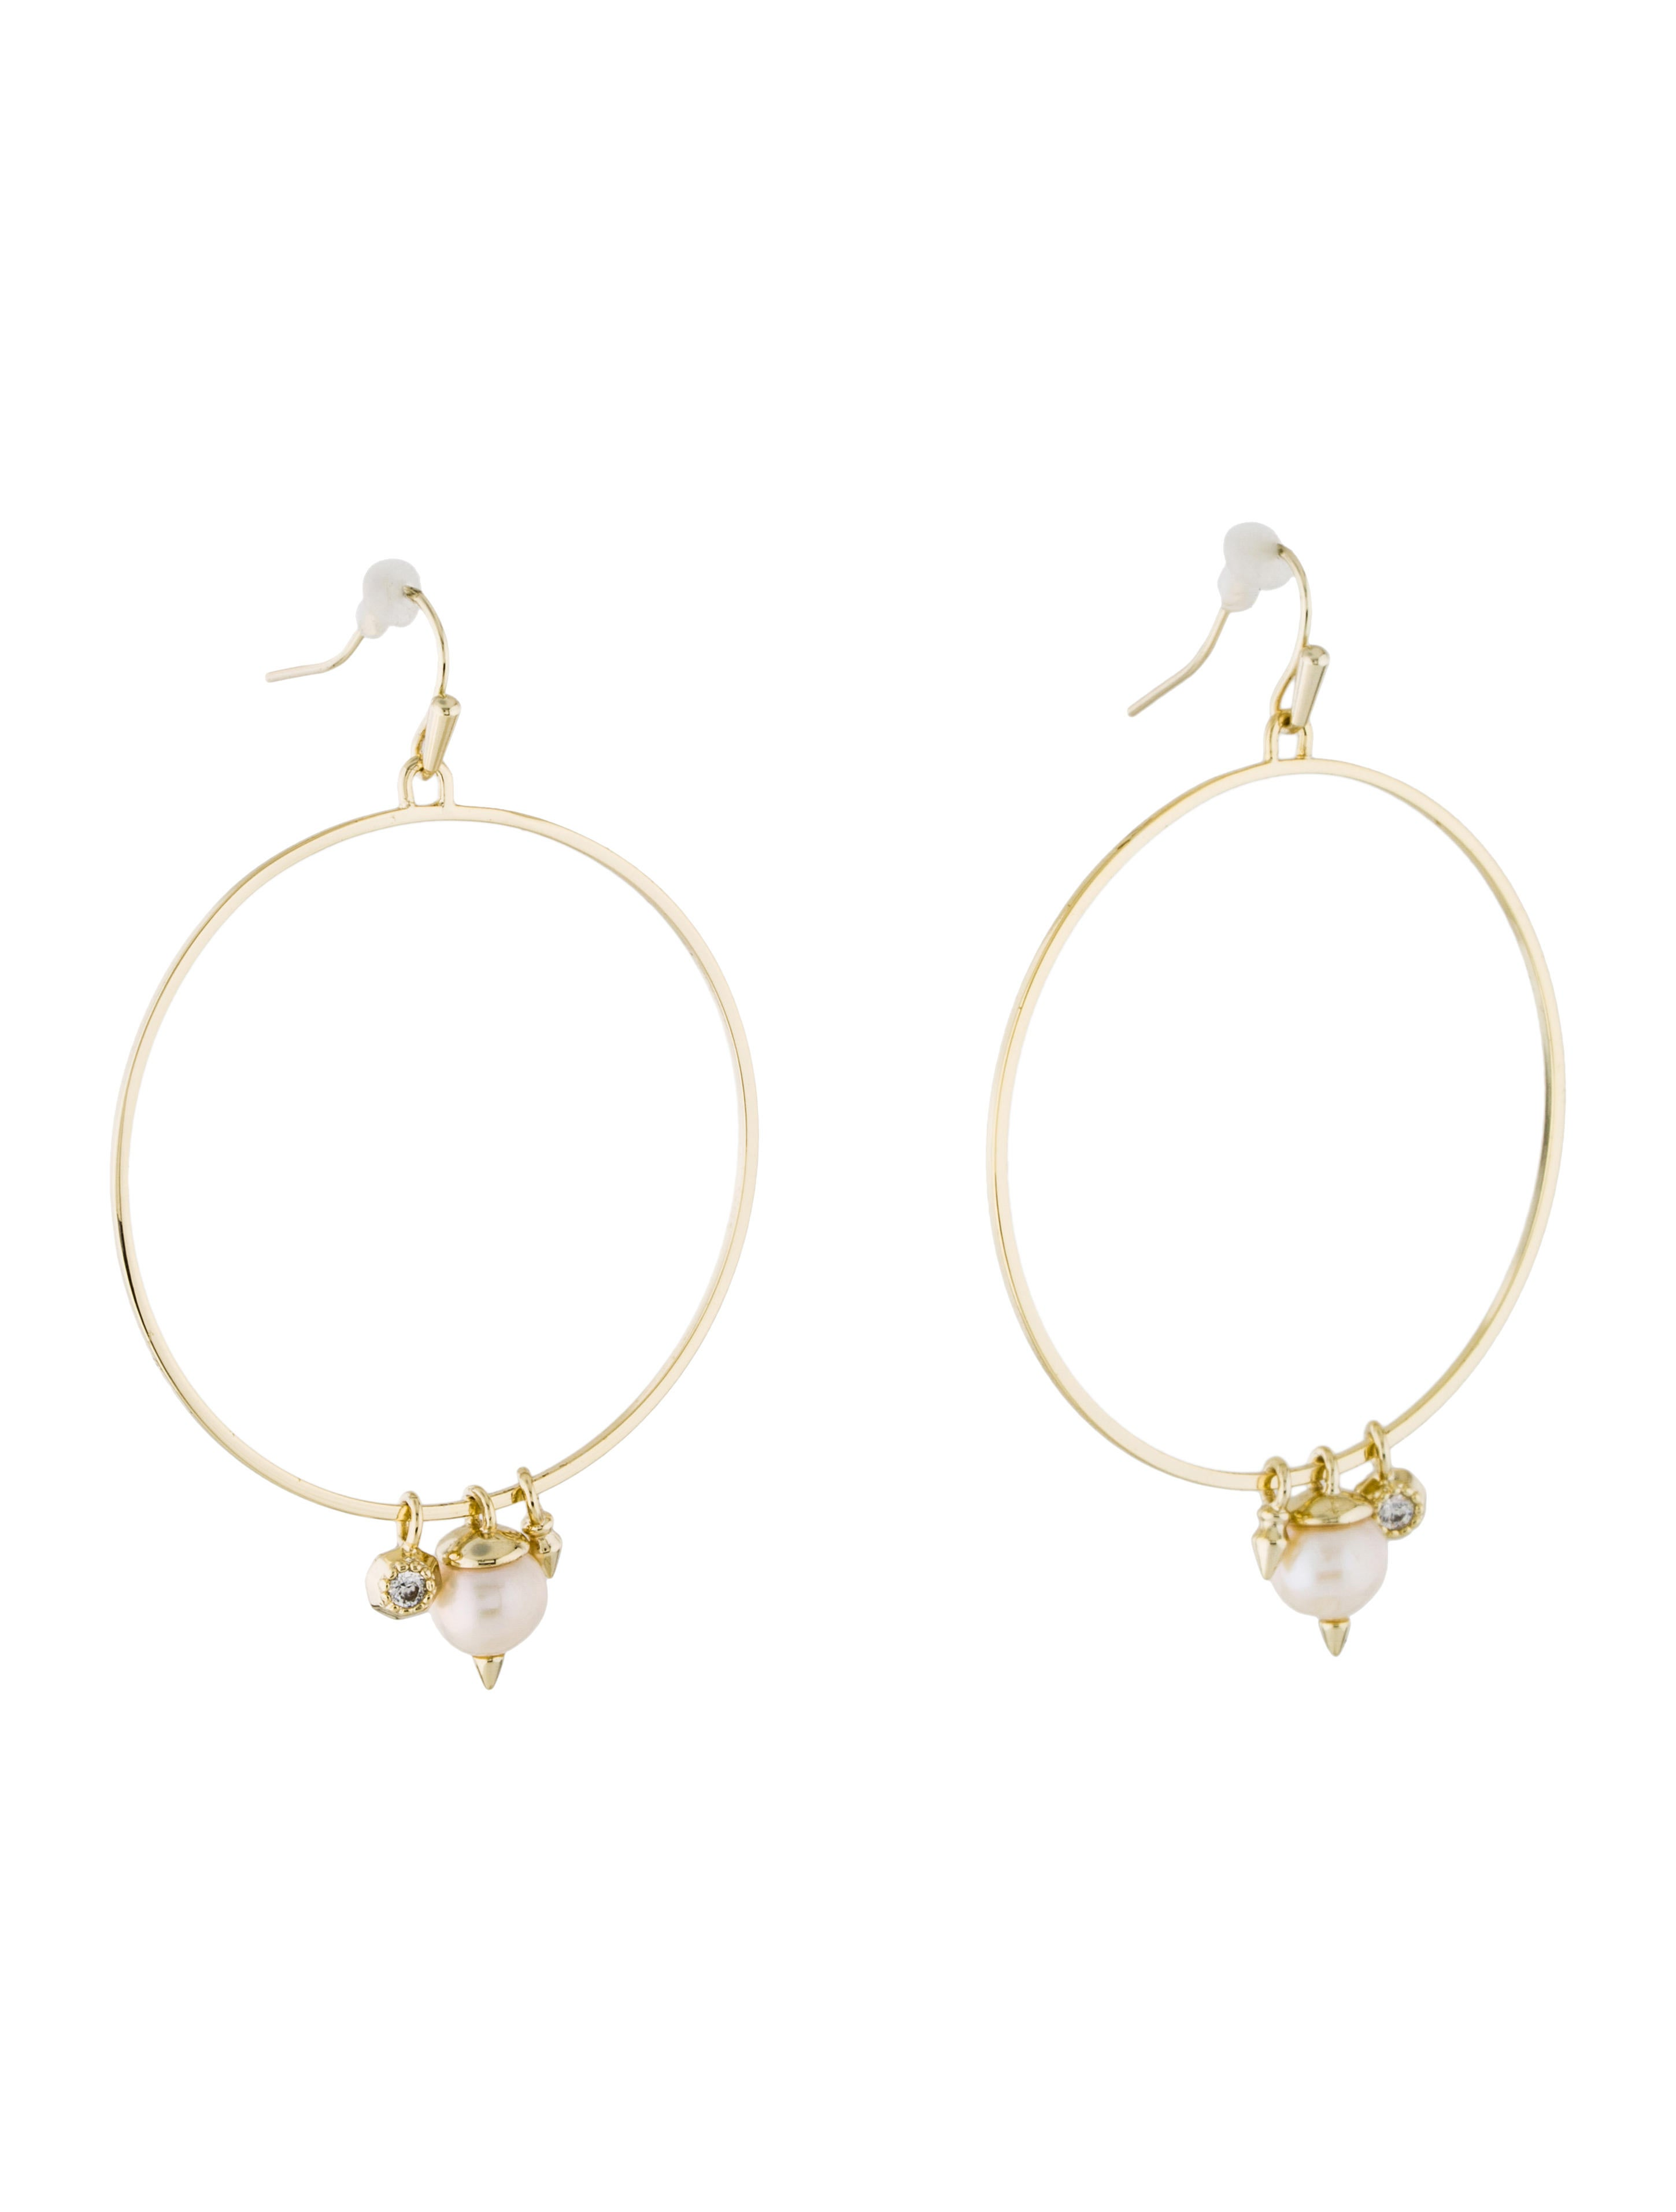 Kendra Scott Pearl Hoop Drop Earrings Earrings